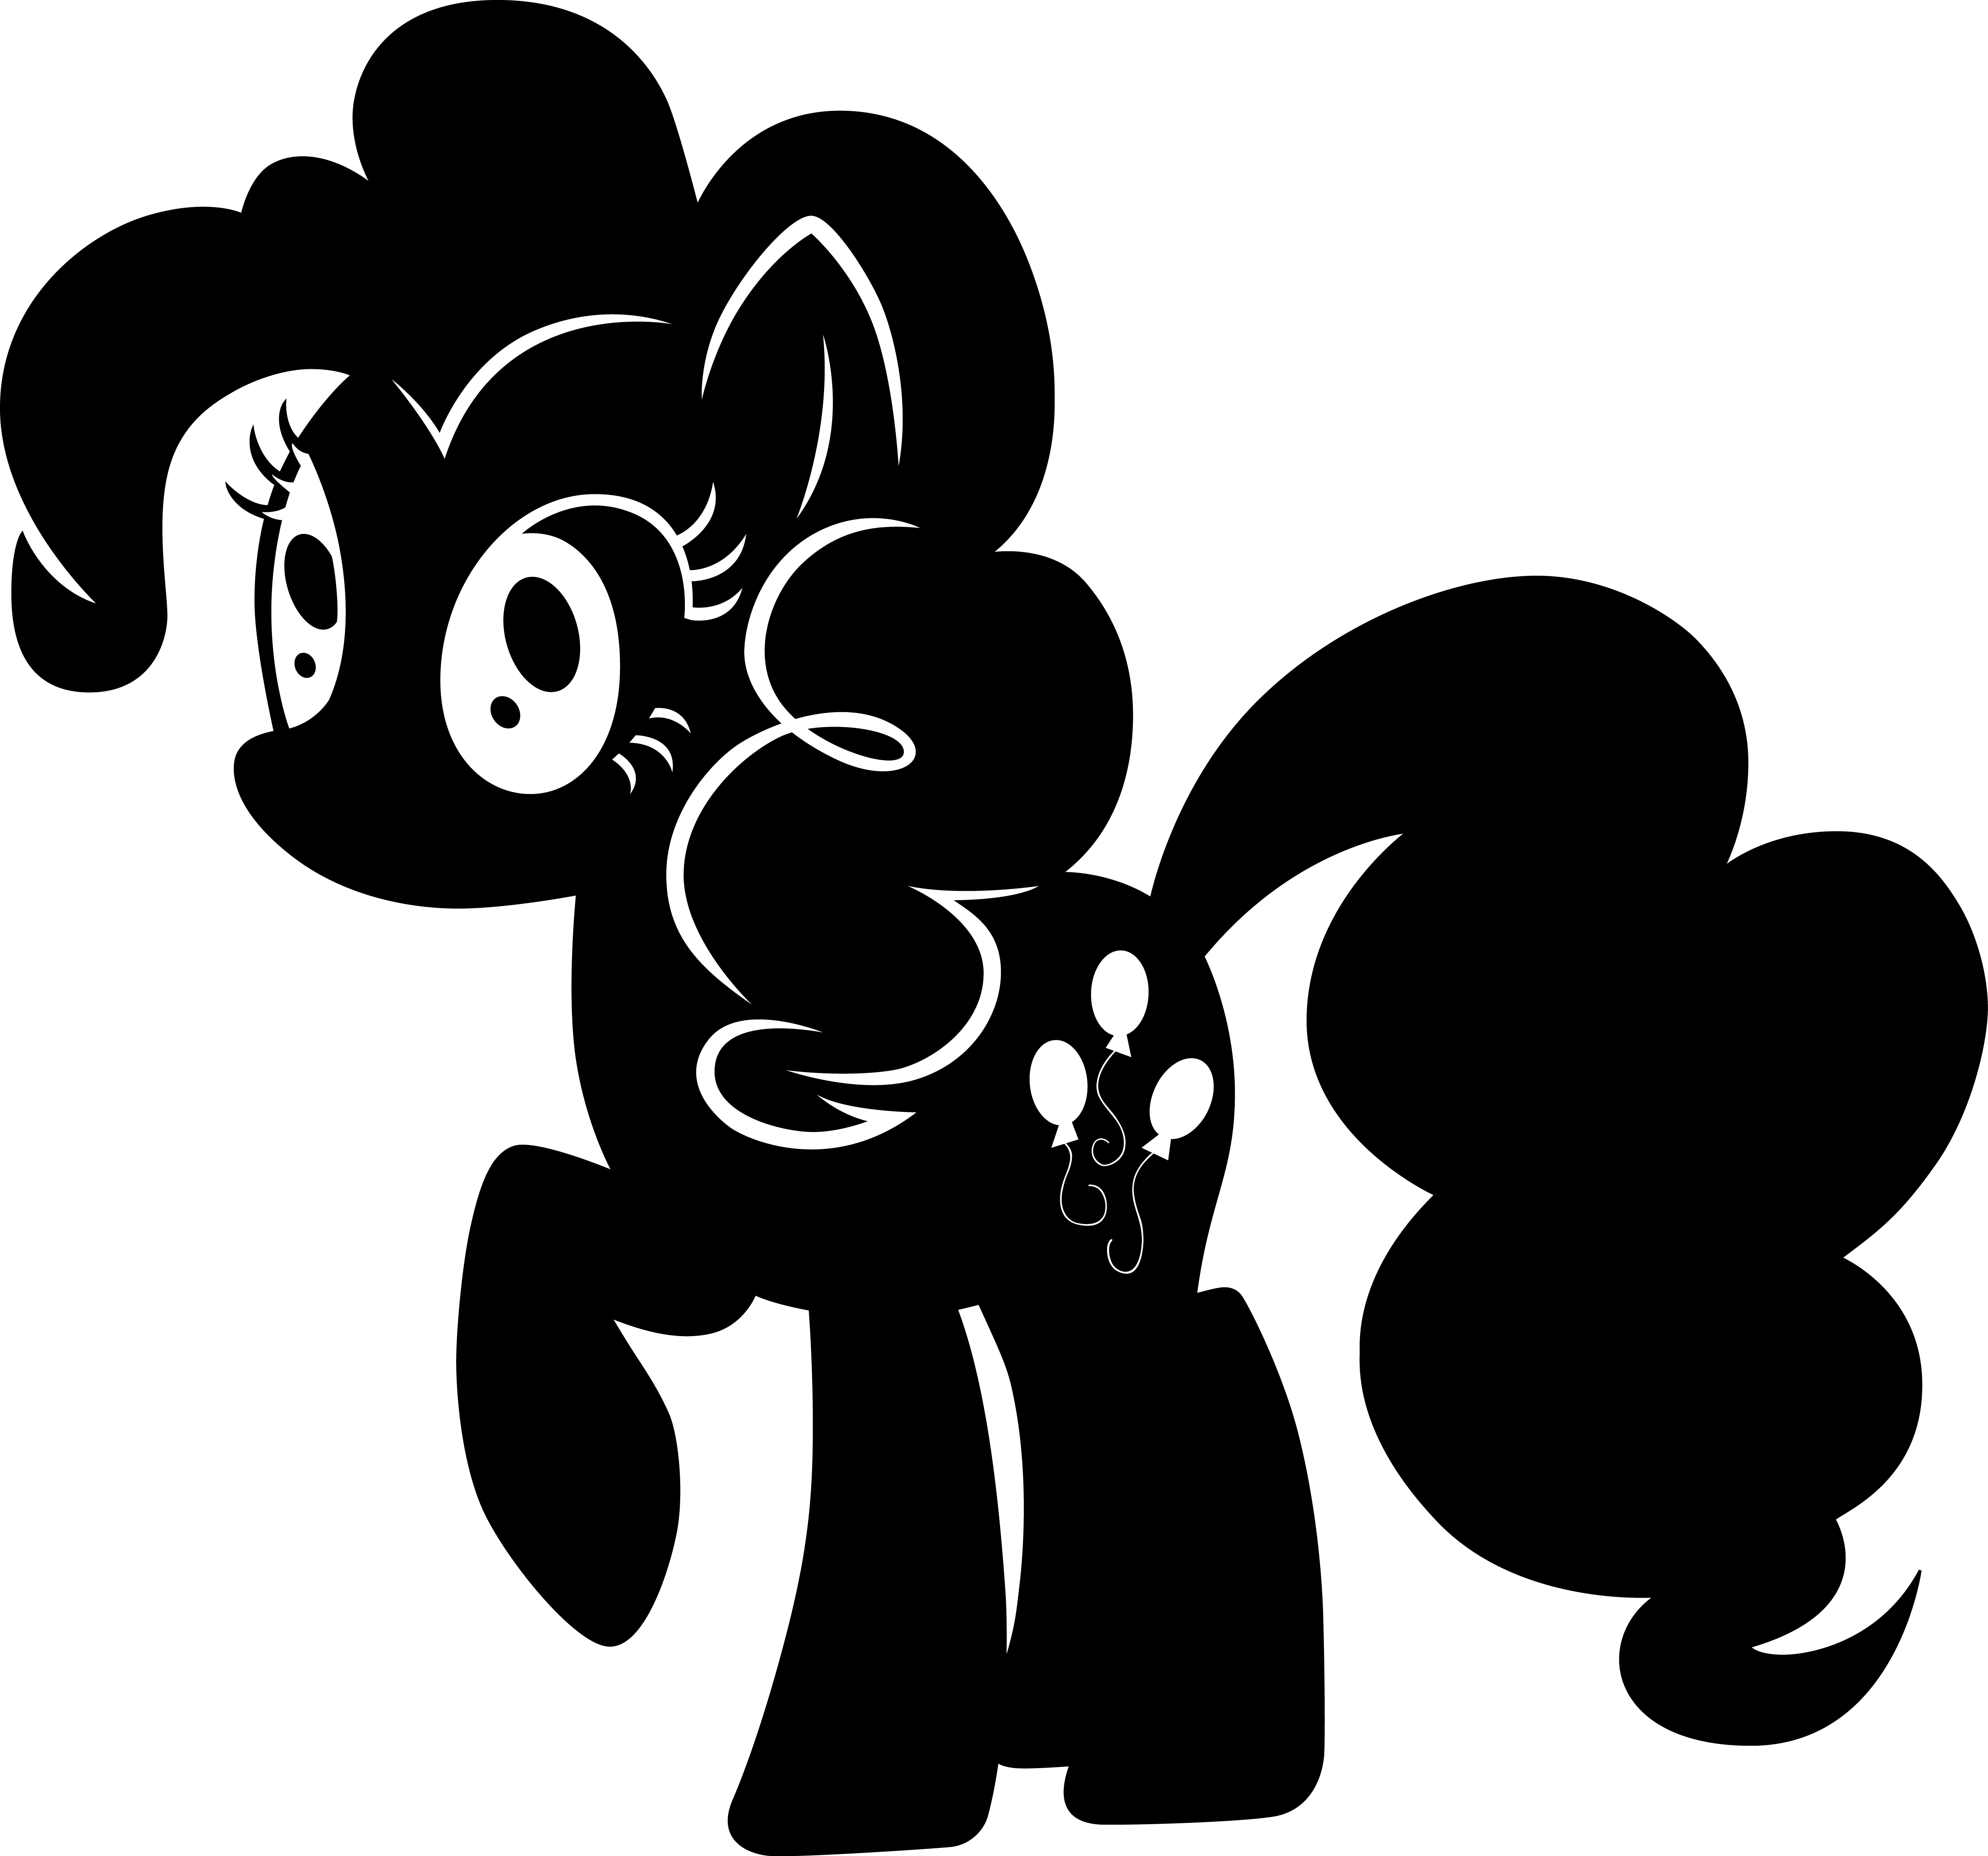 clip royalty free download Pinkie pie silhouette by. My little pony clipart black and white